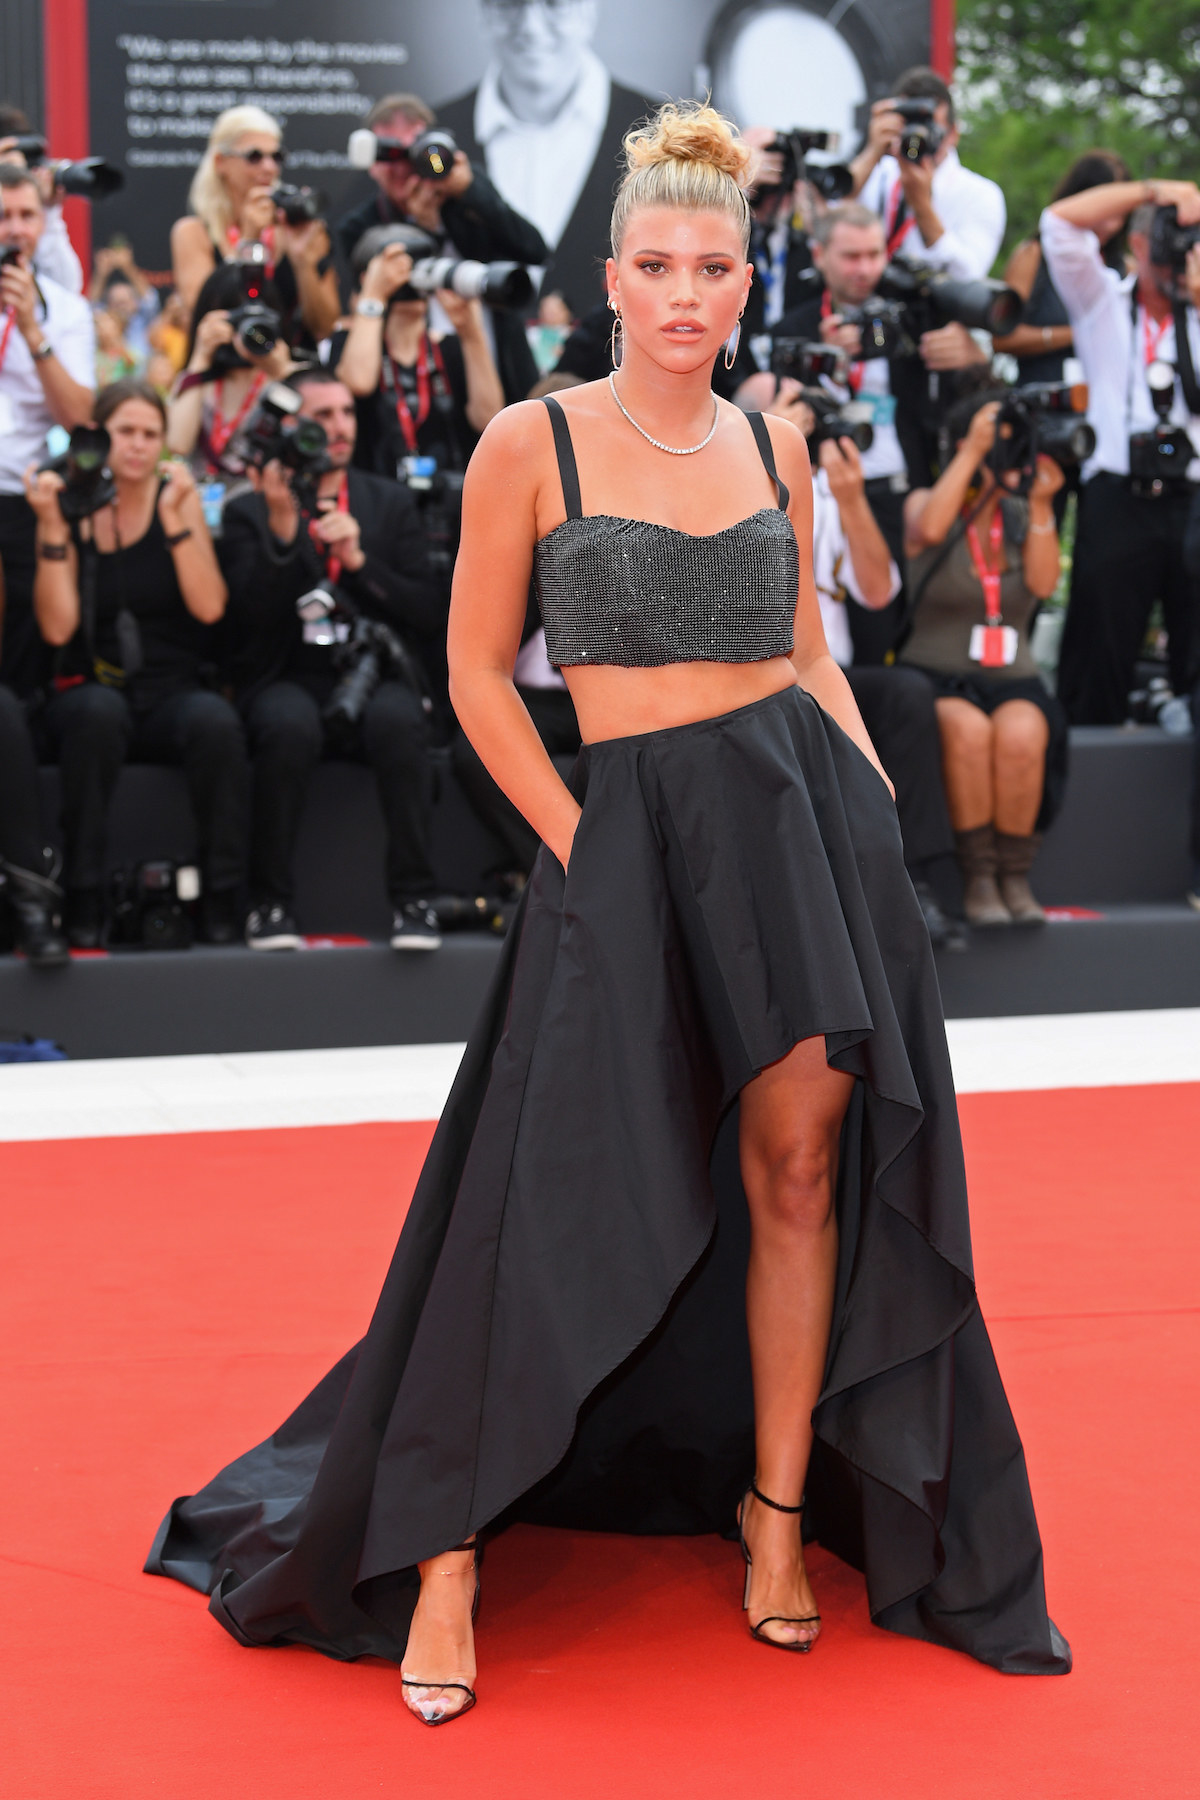 Sofia Richie walks the red carpet ahead of the Opening Ceremony.